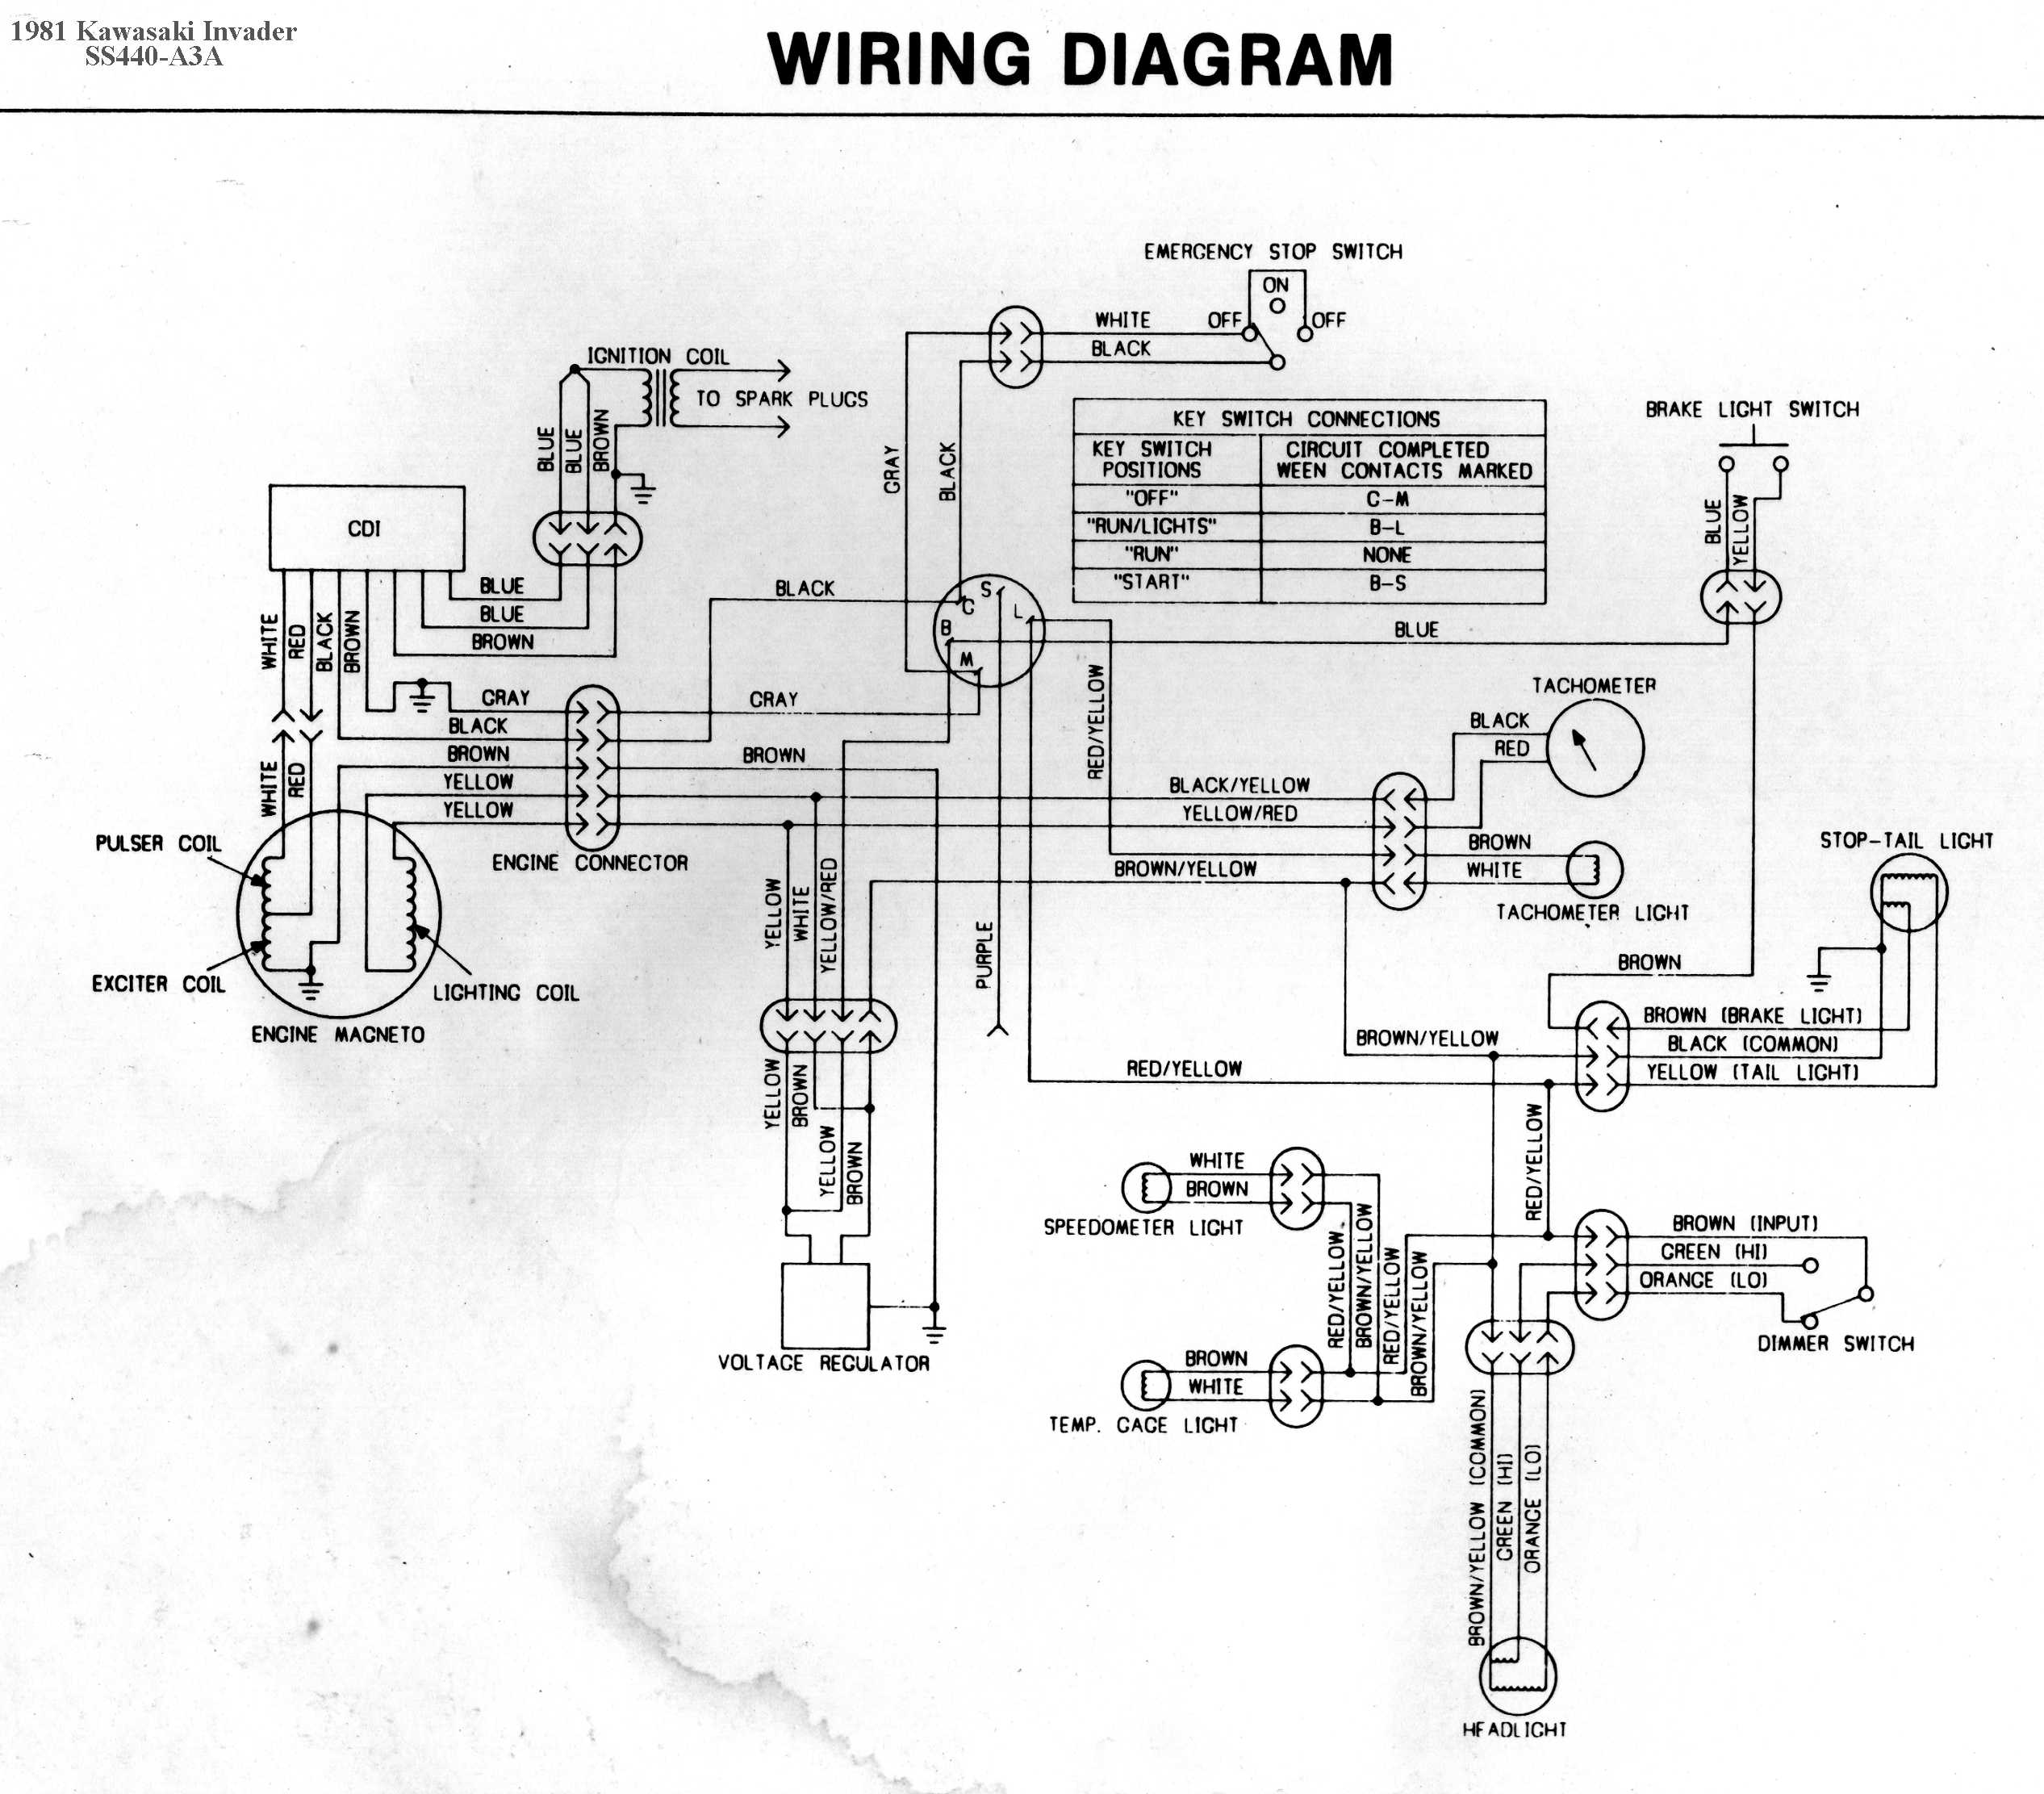 hight resolution of snowmobile wiring diagram schema diagram database snowmobile wiring diagrams snowmobile wiring diagram source arctic cat